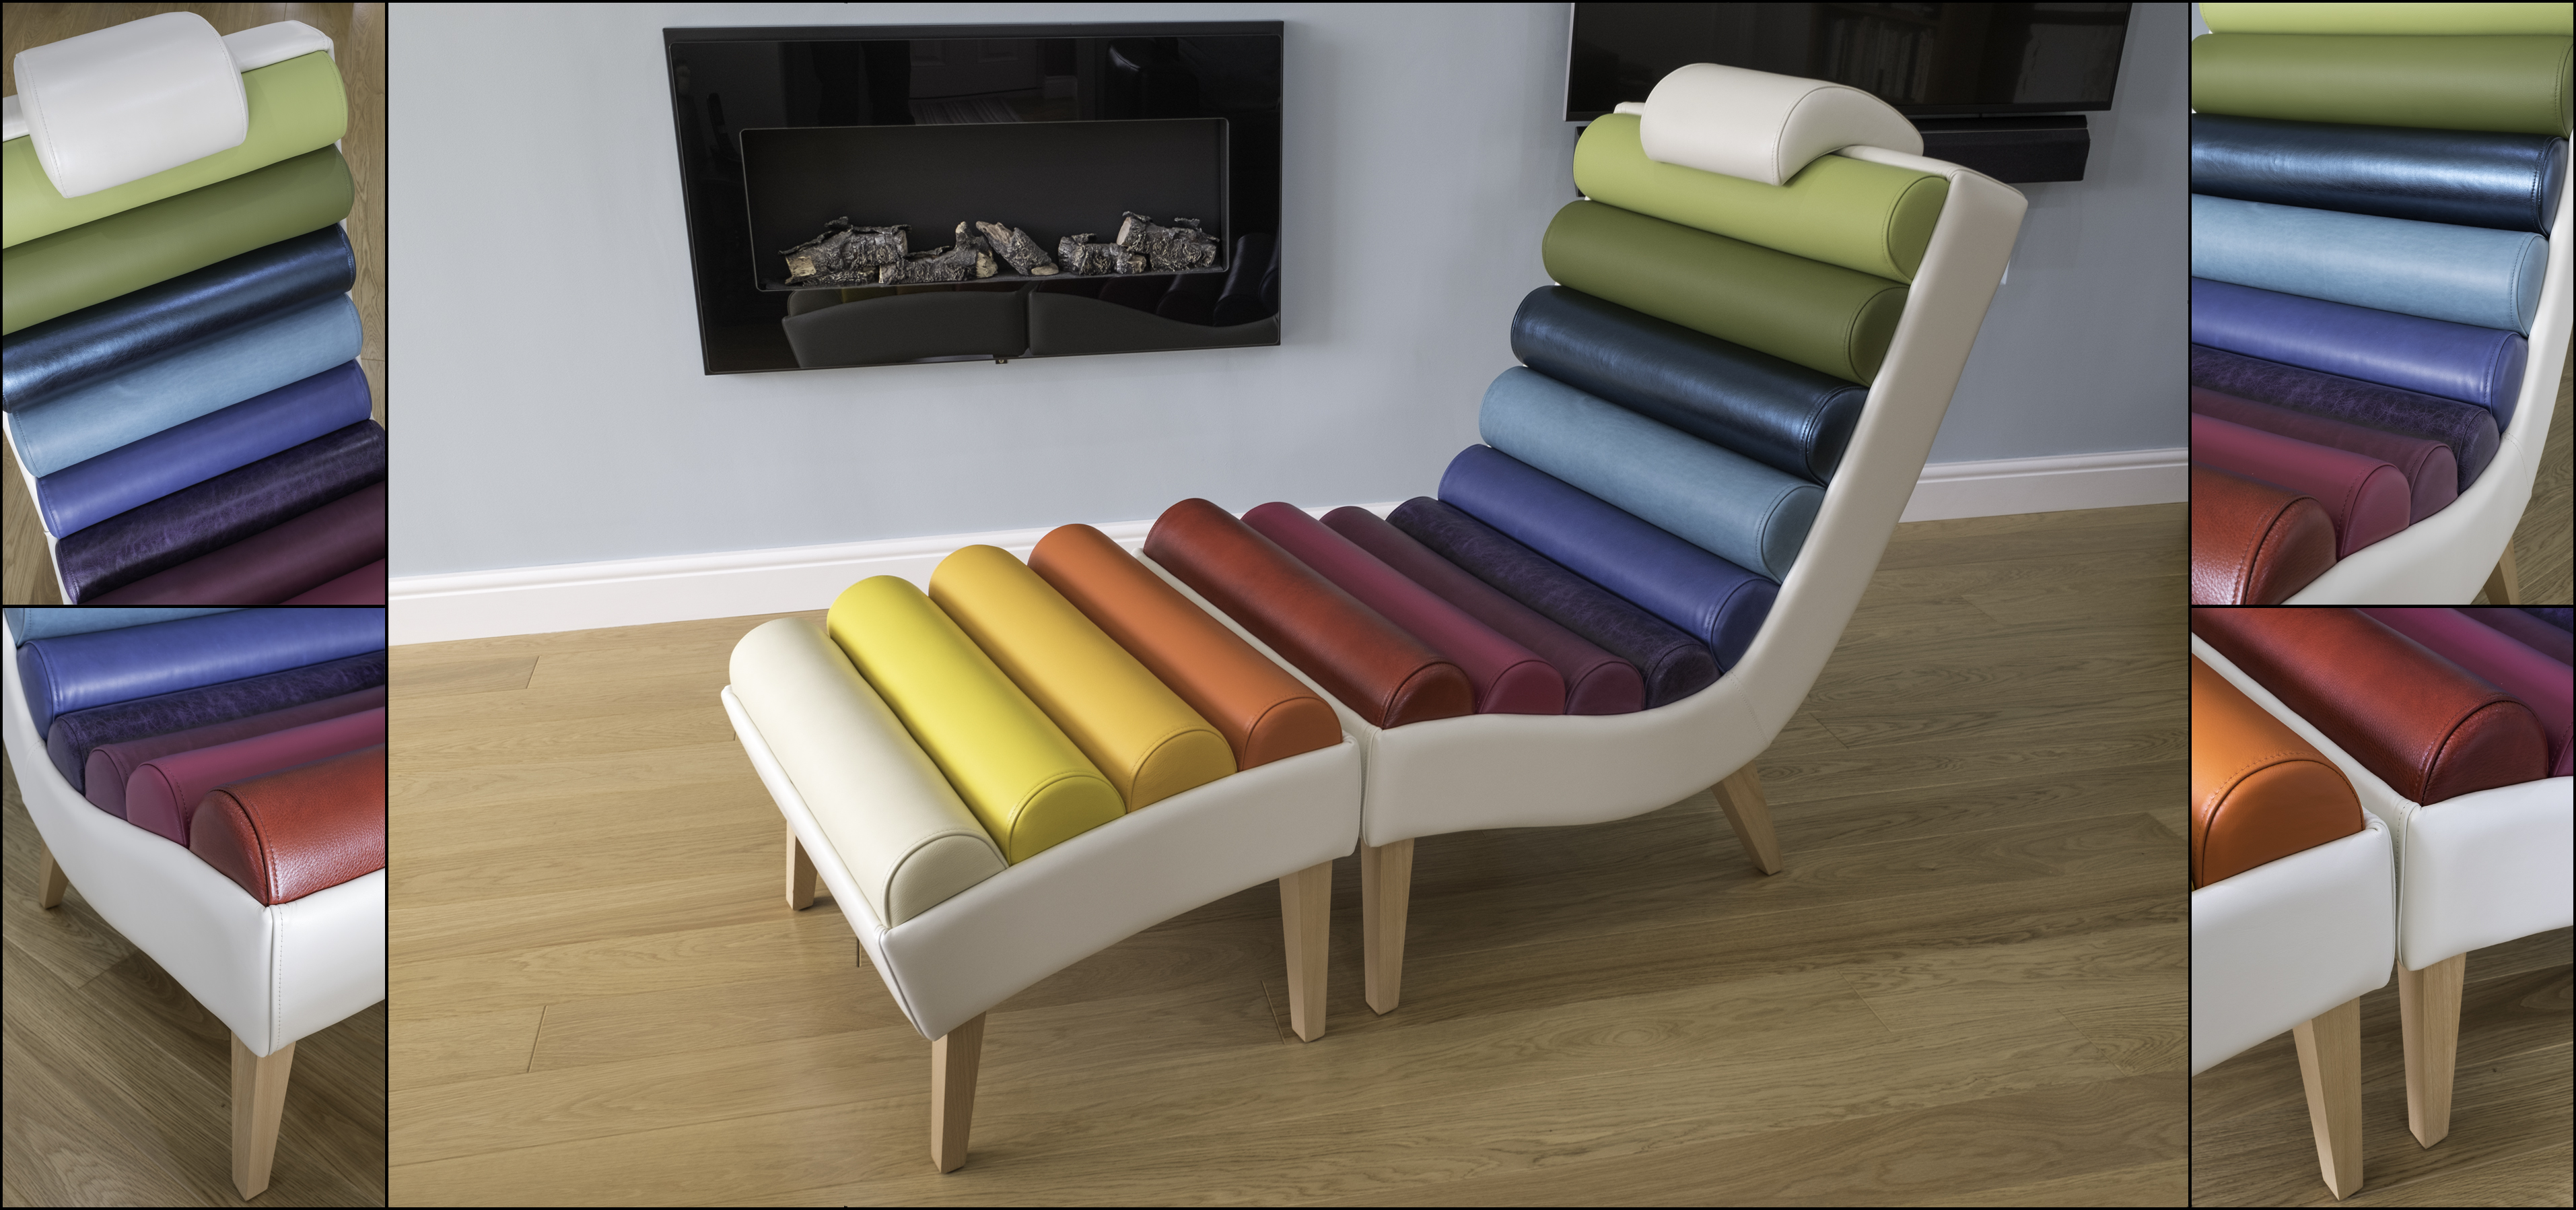 The Multicoloured Split Day Lounger